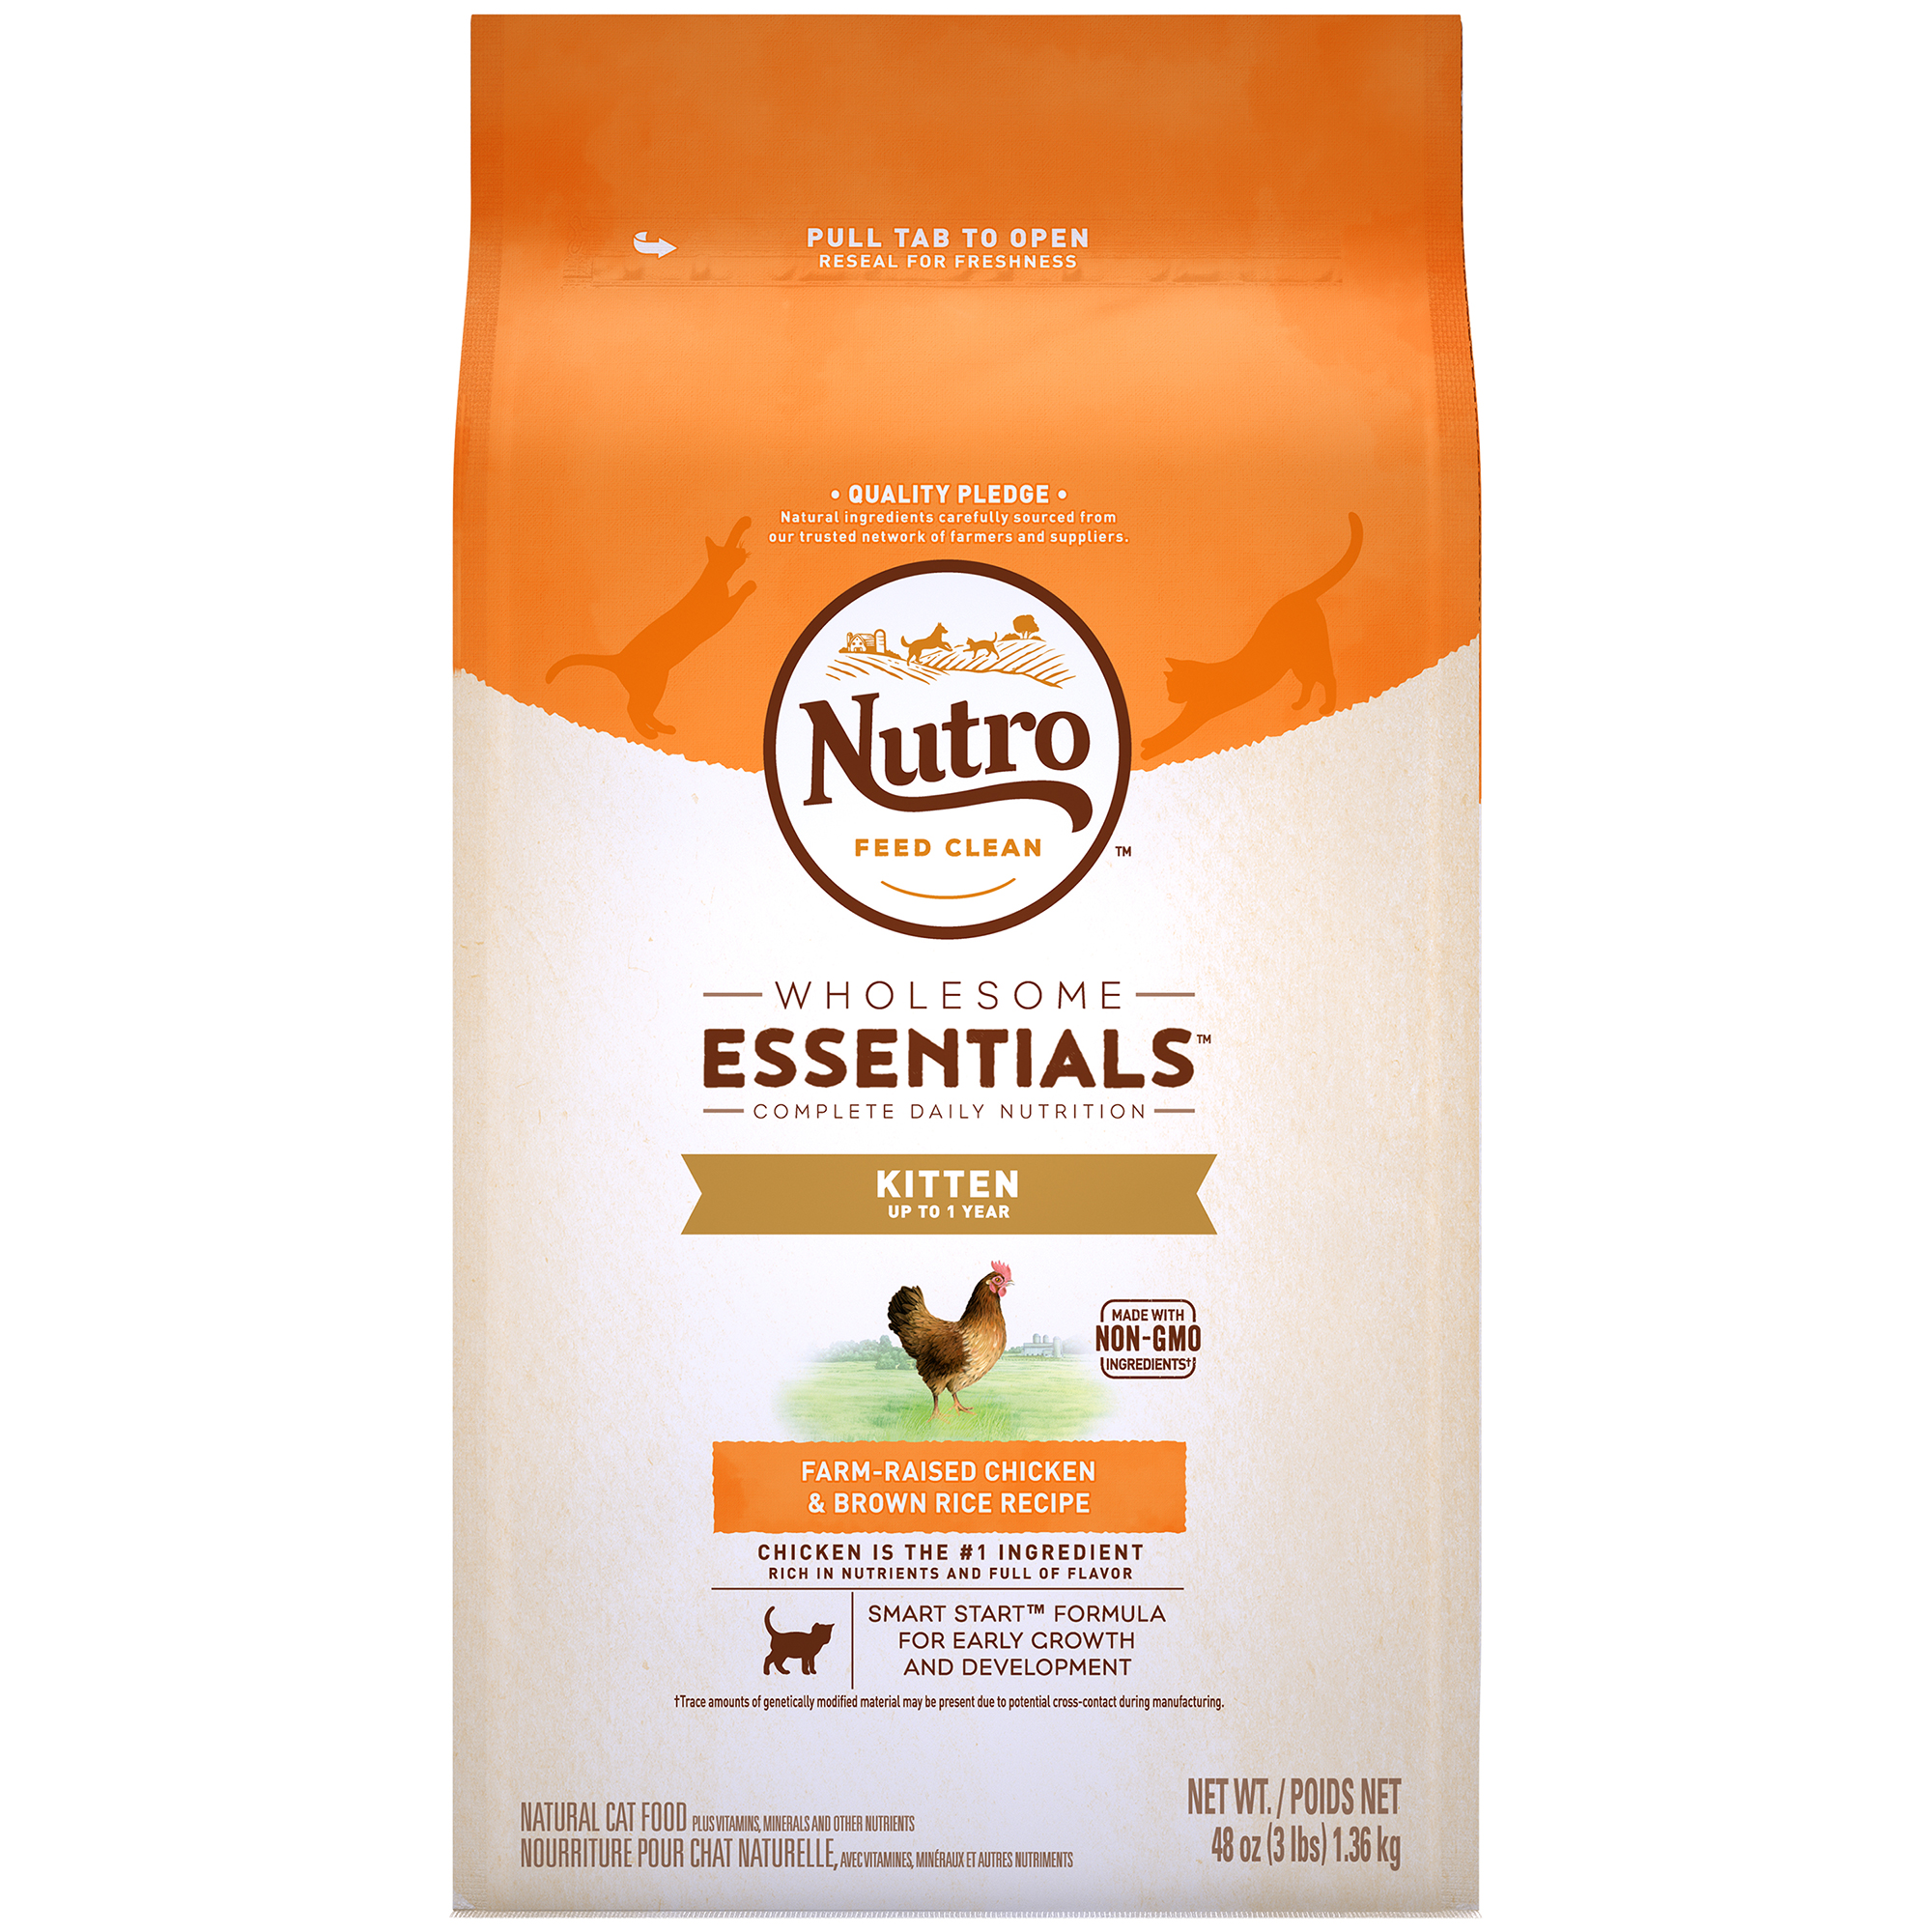 NUTRO WHOLESOME ESSENTIALS Dry Kitten Food, Farm-Raised Chicken & Brown Rice Recipe, 3 Lb